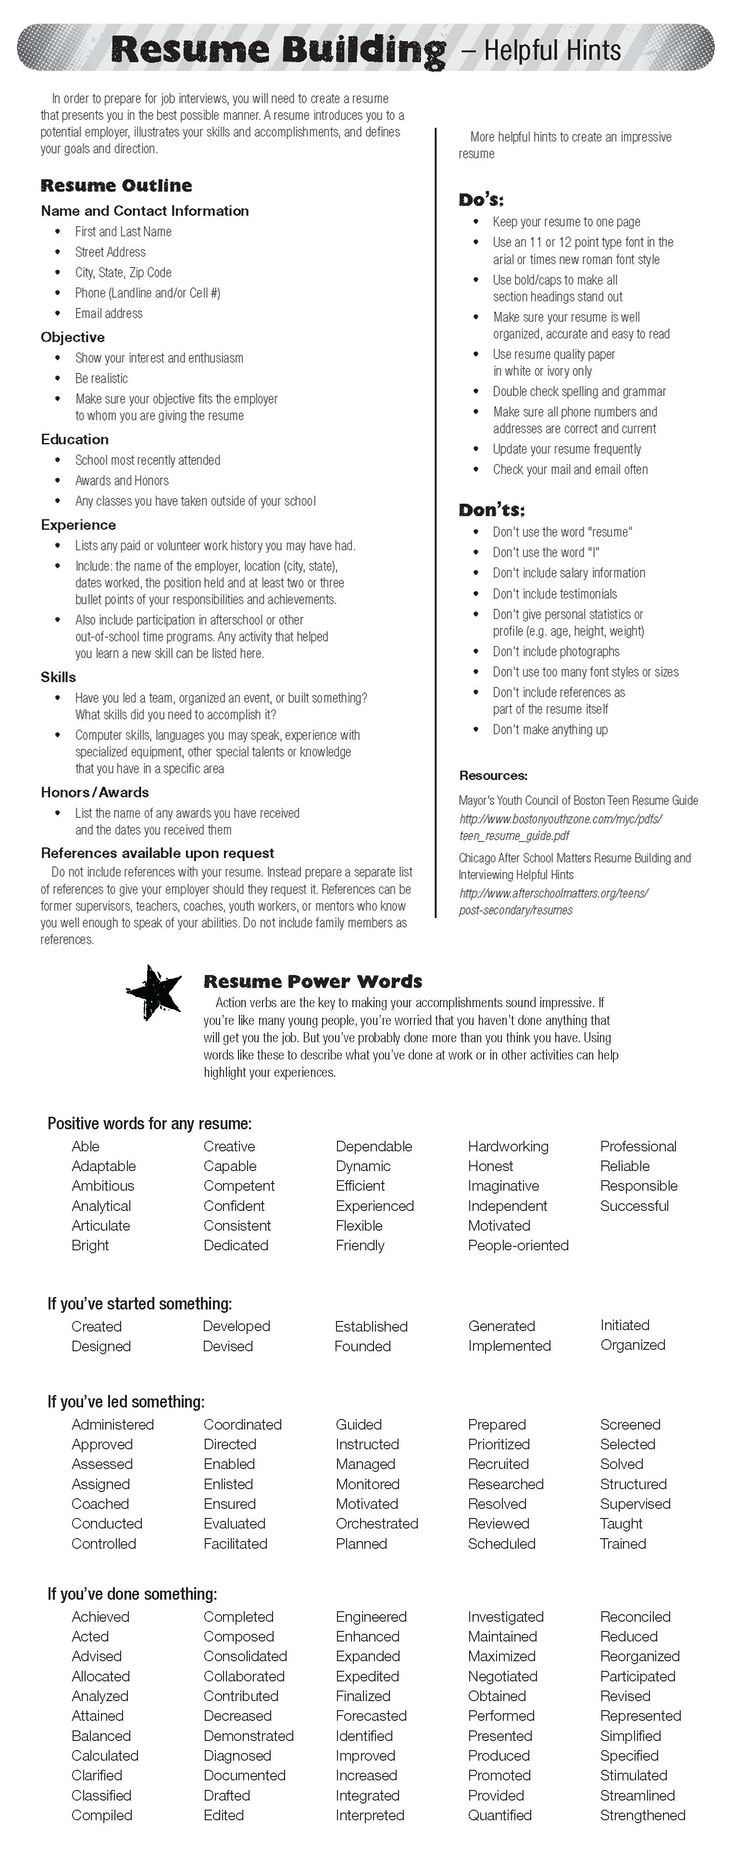 Opposenewapstandardsus  Remarkable  Ideas About Resume On Pinterest  Cv Format Resume Cv And  With Outstanding  Ideas About Resume On Pinterest  Cv Format Resume Cv And Resume Templates With Delectable The Perfect Resume Template Also Automotive Service Manager Resume In Addition Resume Summary For College Student And Cover Letter On A Resume As Well As Template For Resume Word Additionally Ballet Resume From Pinterestcom With Opposenewapstandardsus  Outstanding  Ideas About Resume On Pinterest  Cv Format Resume Cv And  With Delectable  Ideas About Resume On Pinterest  Cv Format Resume Cv And Resume Templates And Remarkable The Perfect Resume Template Also Automotive Service Manager Resume In Addition Resume Summary For College Student From Pinterestcom